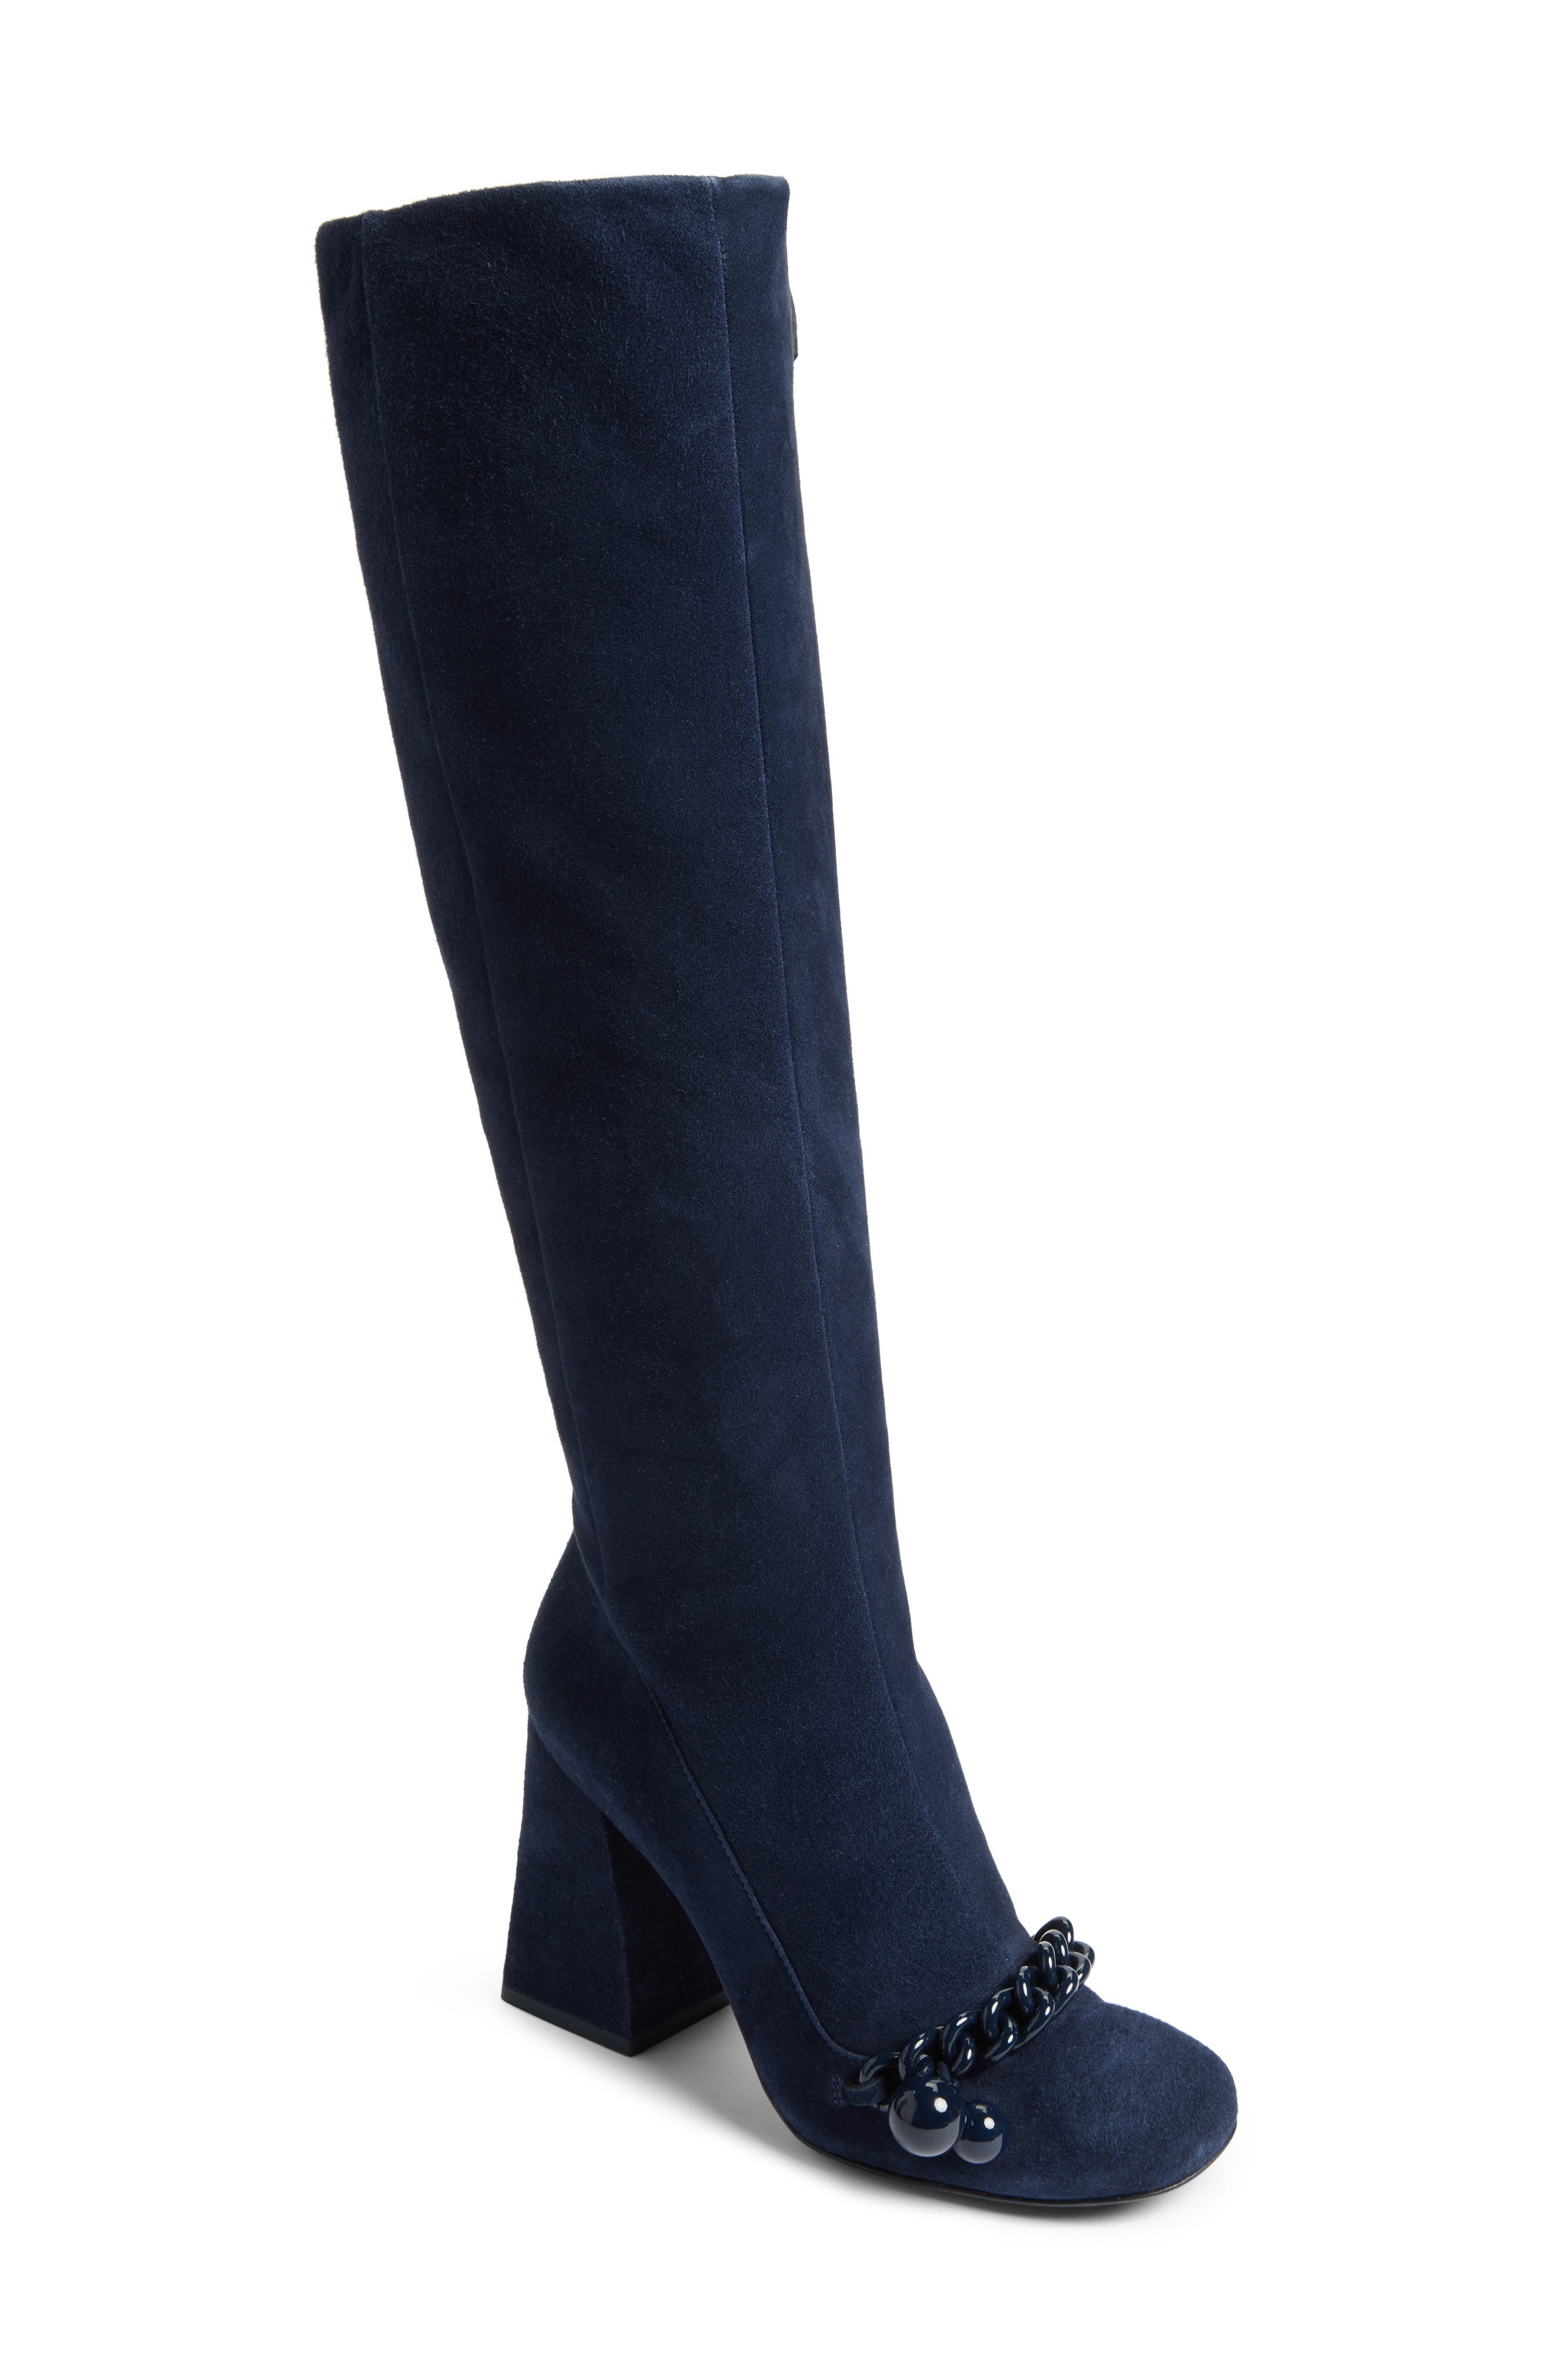 Alternate Image 1 Selected - Tory Burch Addison Flared Heel Boot (Women)